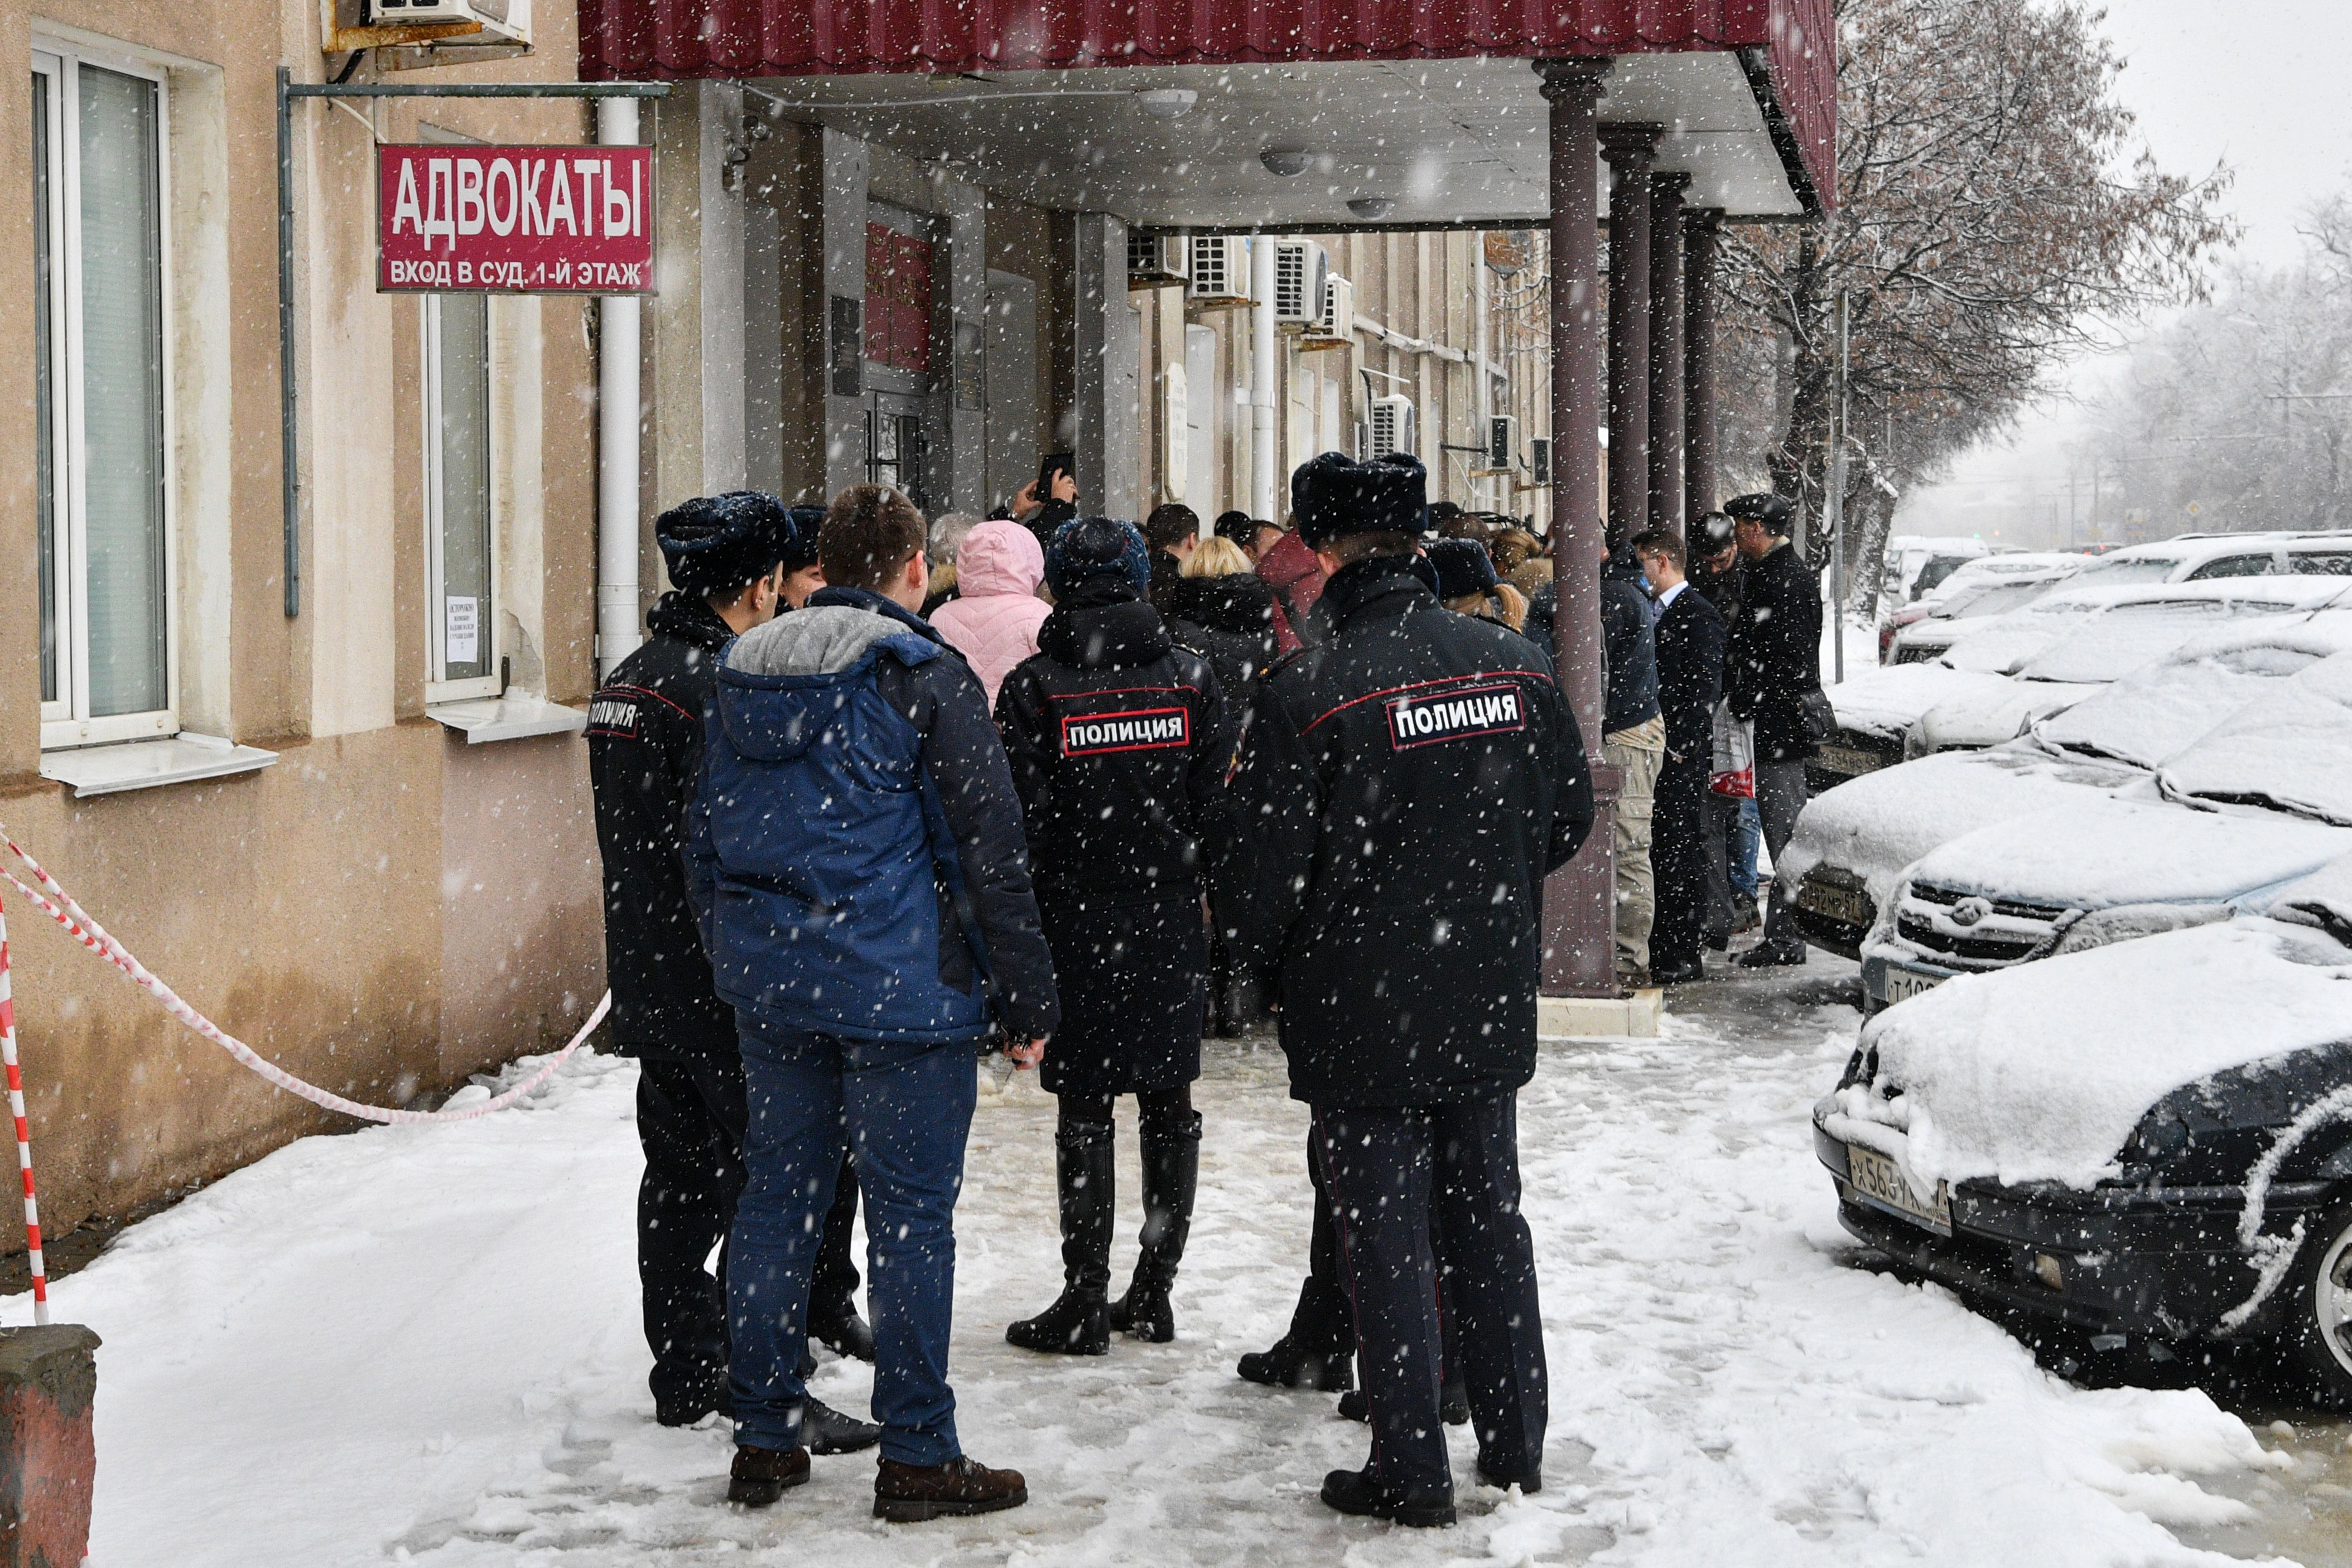 "Members of the media and supporters of Dennis Christensen gather outside a courthouse after the verdict announcement in his trial in the town of Oryol on February 6, 2019. - A Russian court on February 6, 2019 sentenced a Danish Jehovah's Witness to six years in prison for ""extremism"", in the first conviction of its kind since a 2017 law that outlawed the religious group. (Photo by Mladen ANTONOV / AFP) (Photo credit should read MLADEN ANTONOV/AFP via Getty Images)"